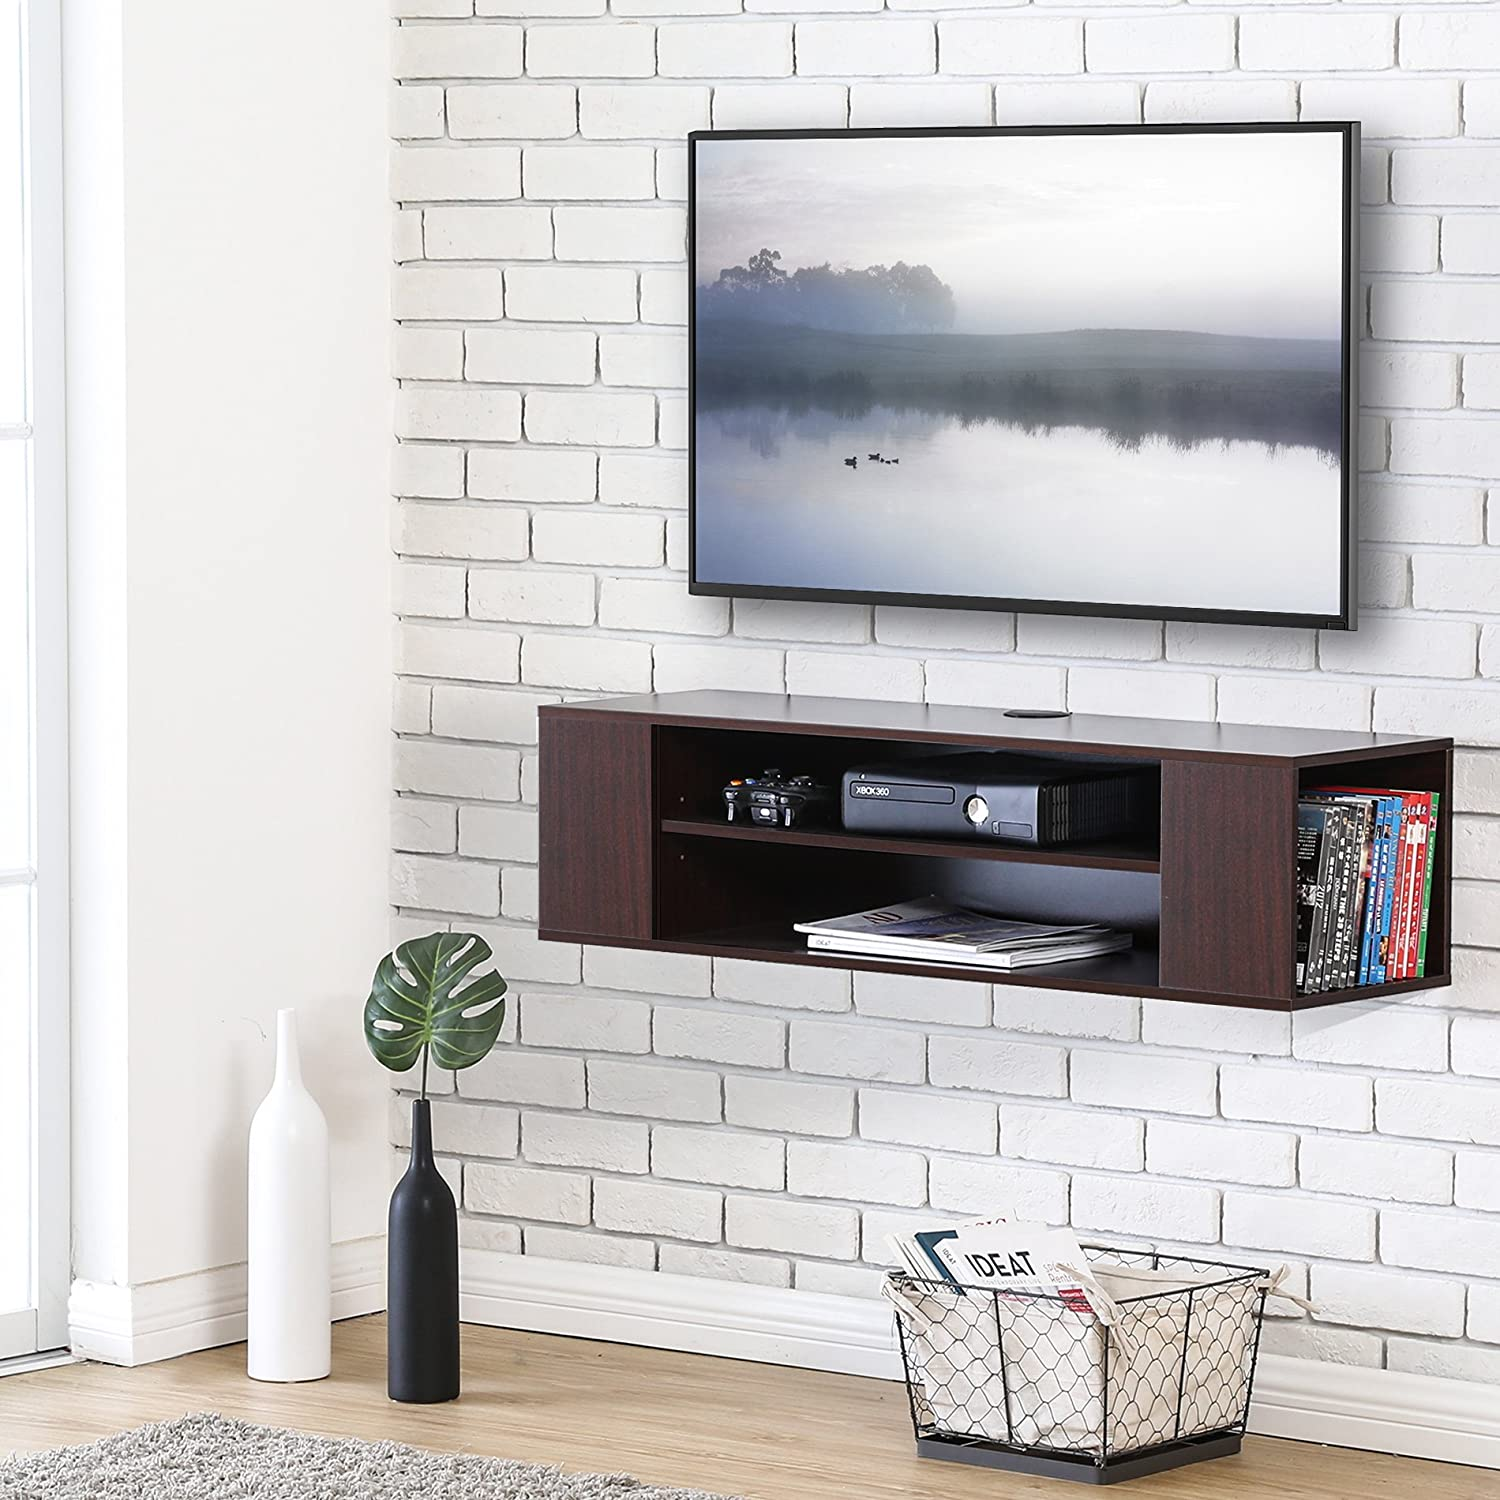 Amazon.com: Wall Mounted Walnut TV Stand Console Storage ...